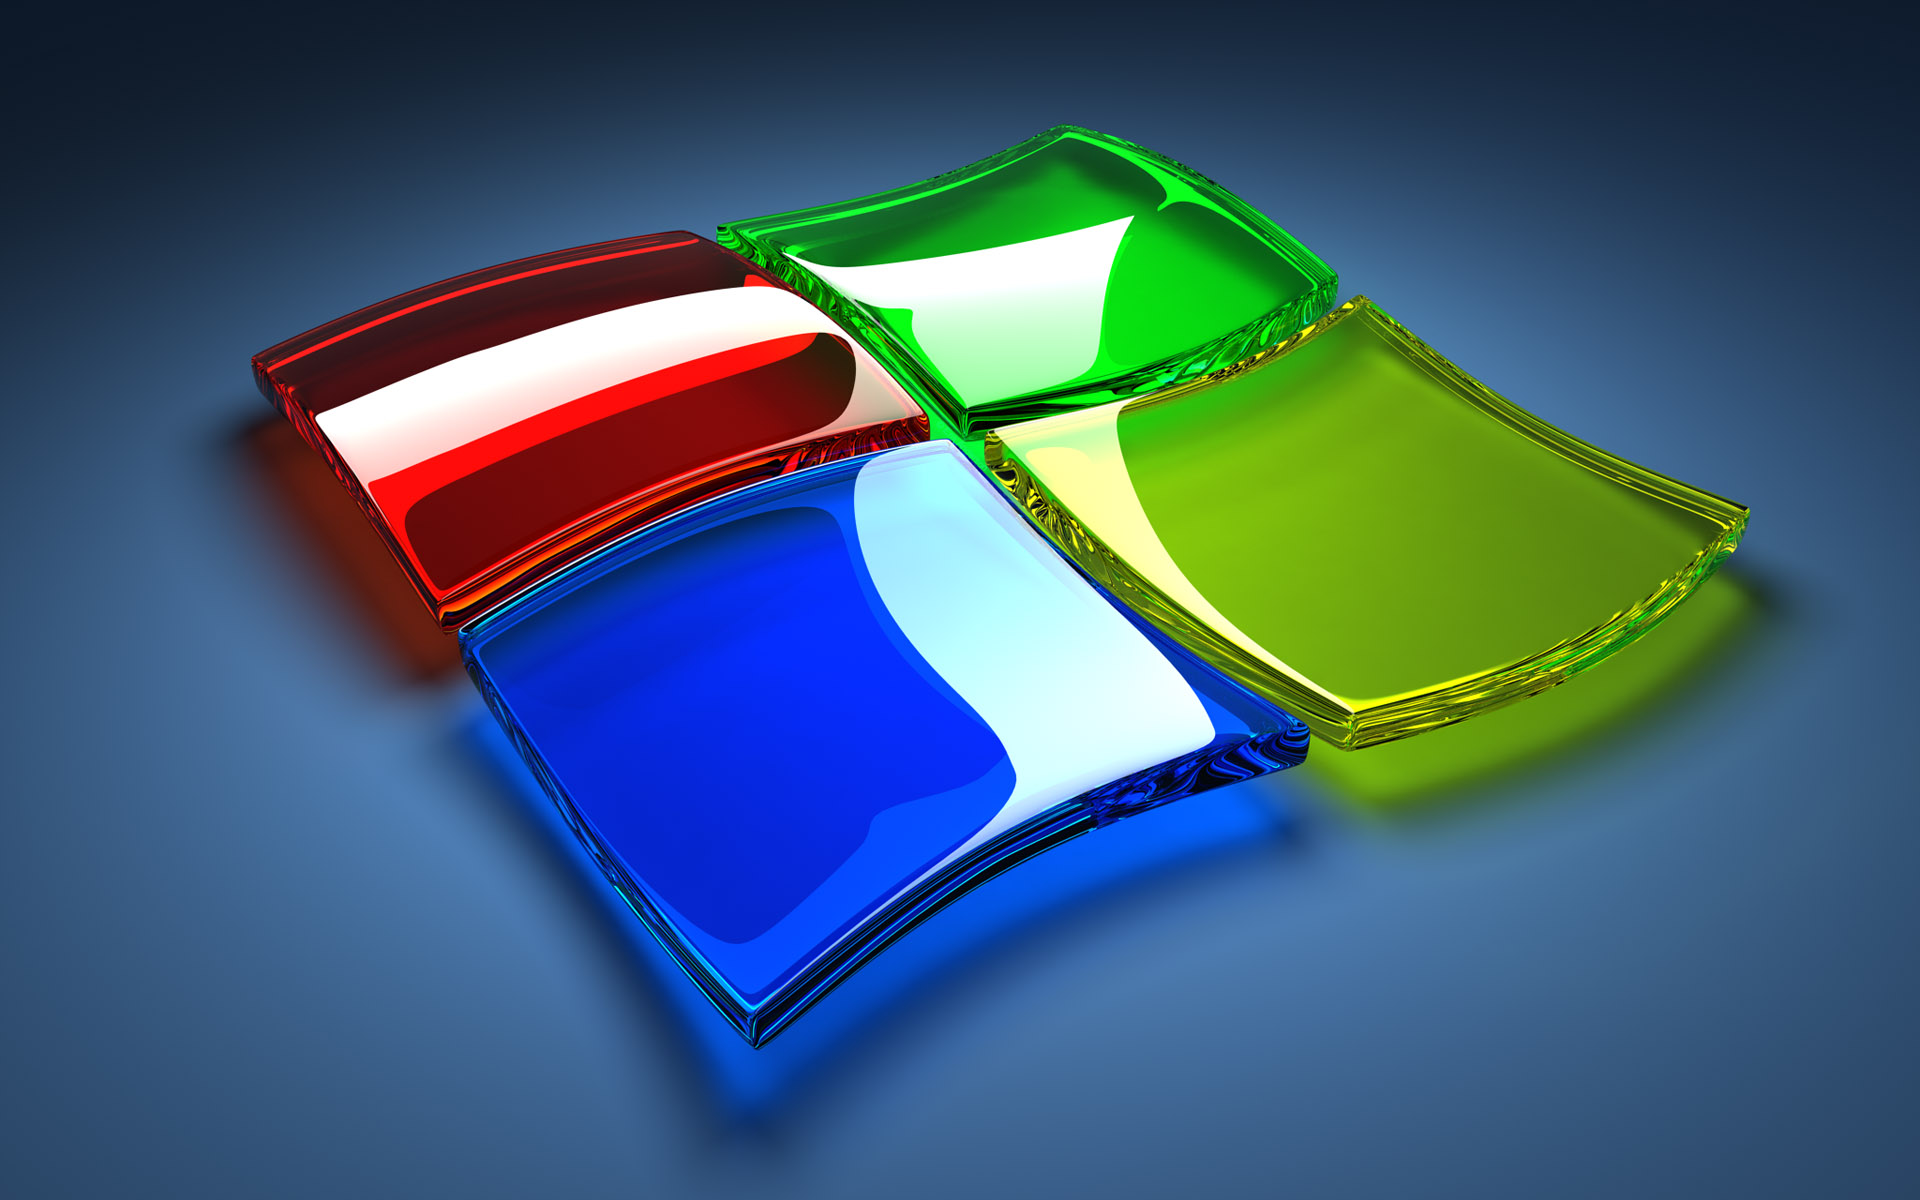 1280x800px Windows Desktop Backgrounds free Download for PC | #521026